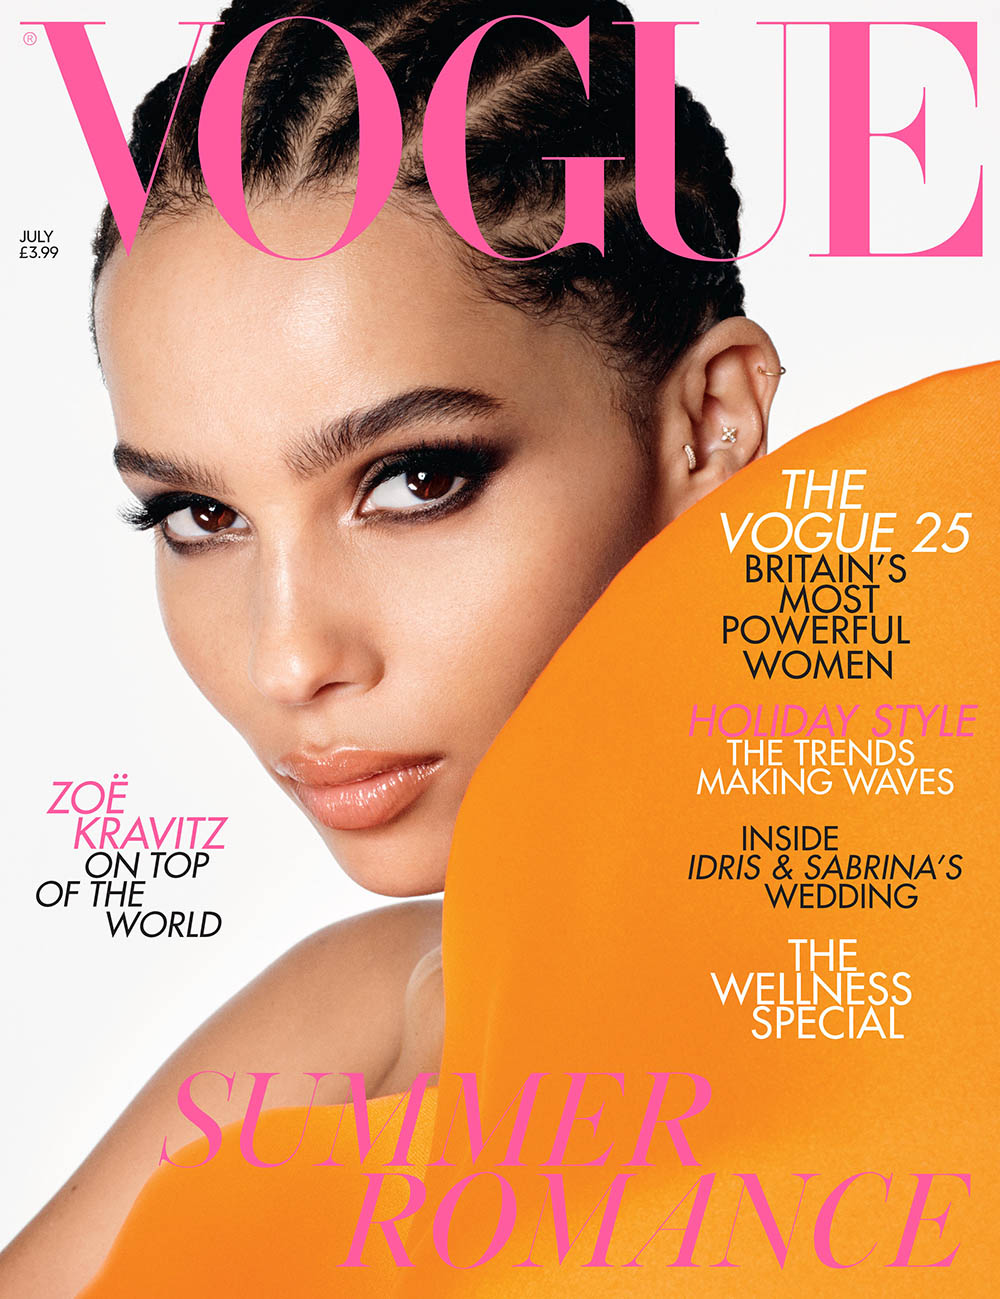 Zoë Kravitz covers British Vogue July 2019 by Steven Meisel